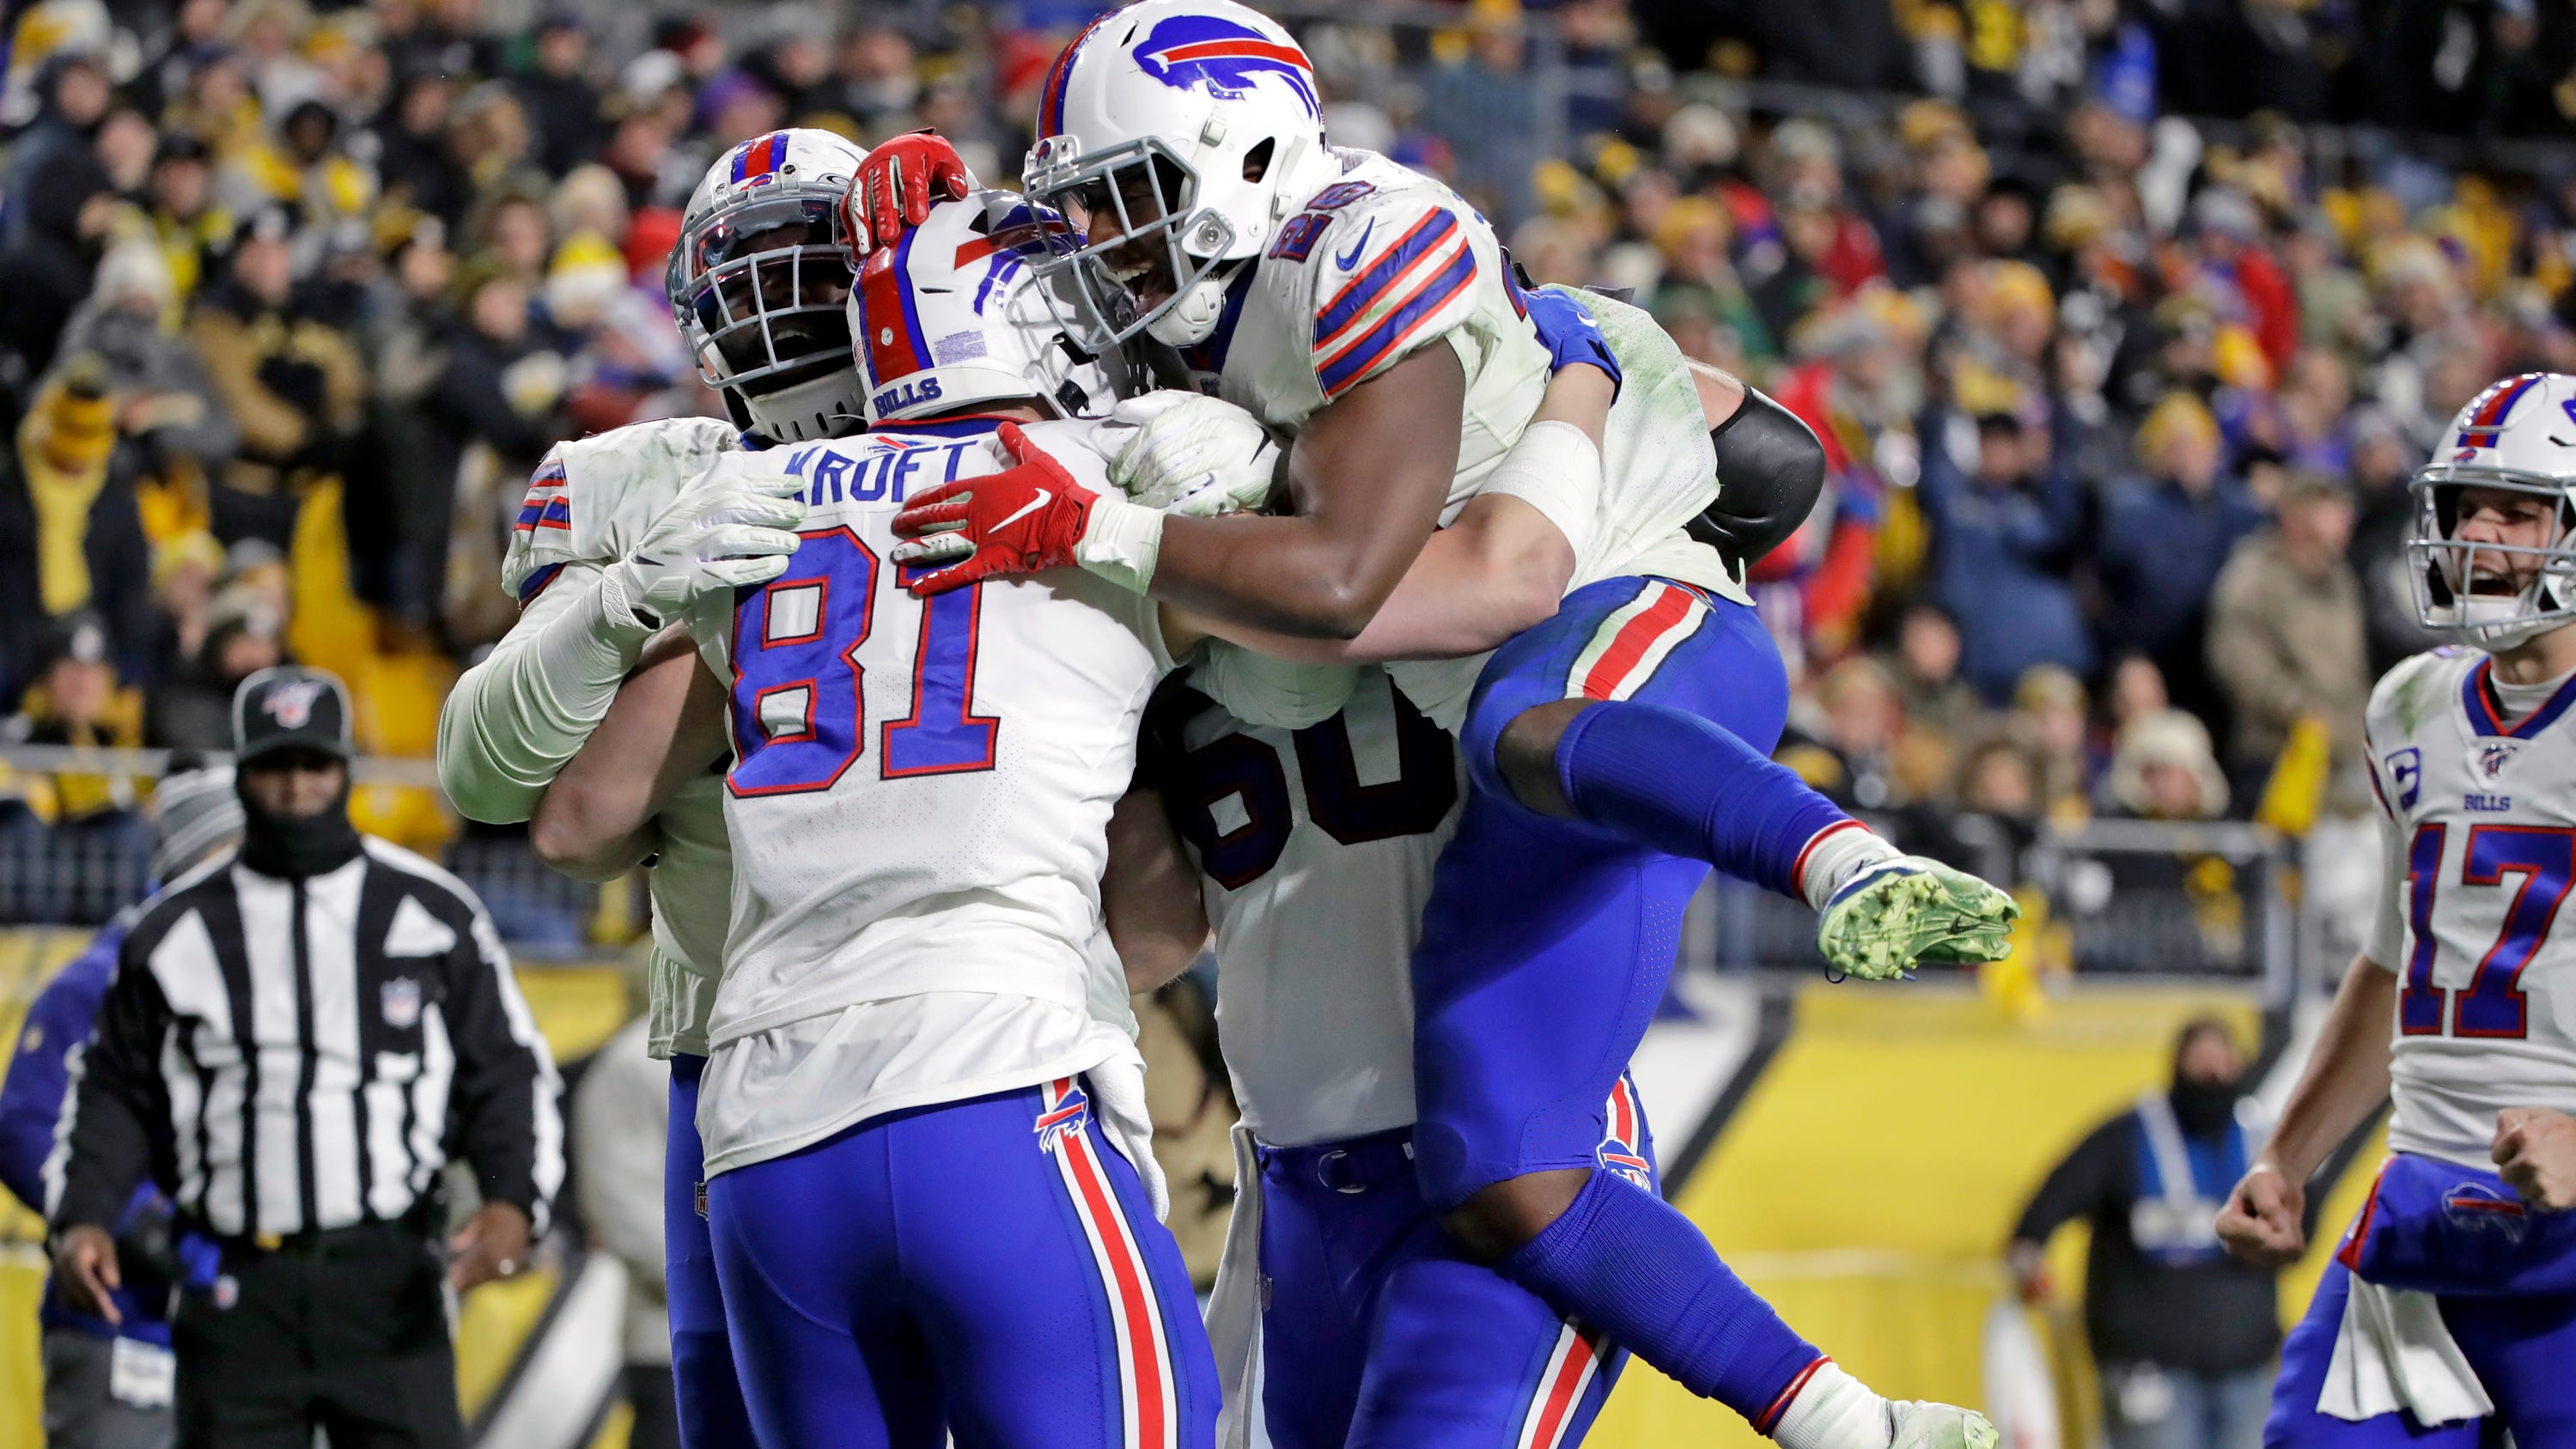 Buffalo Bills clinch AFC playoff spot with win vs. Pittsburgh Steelers